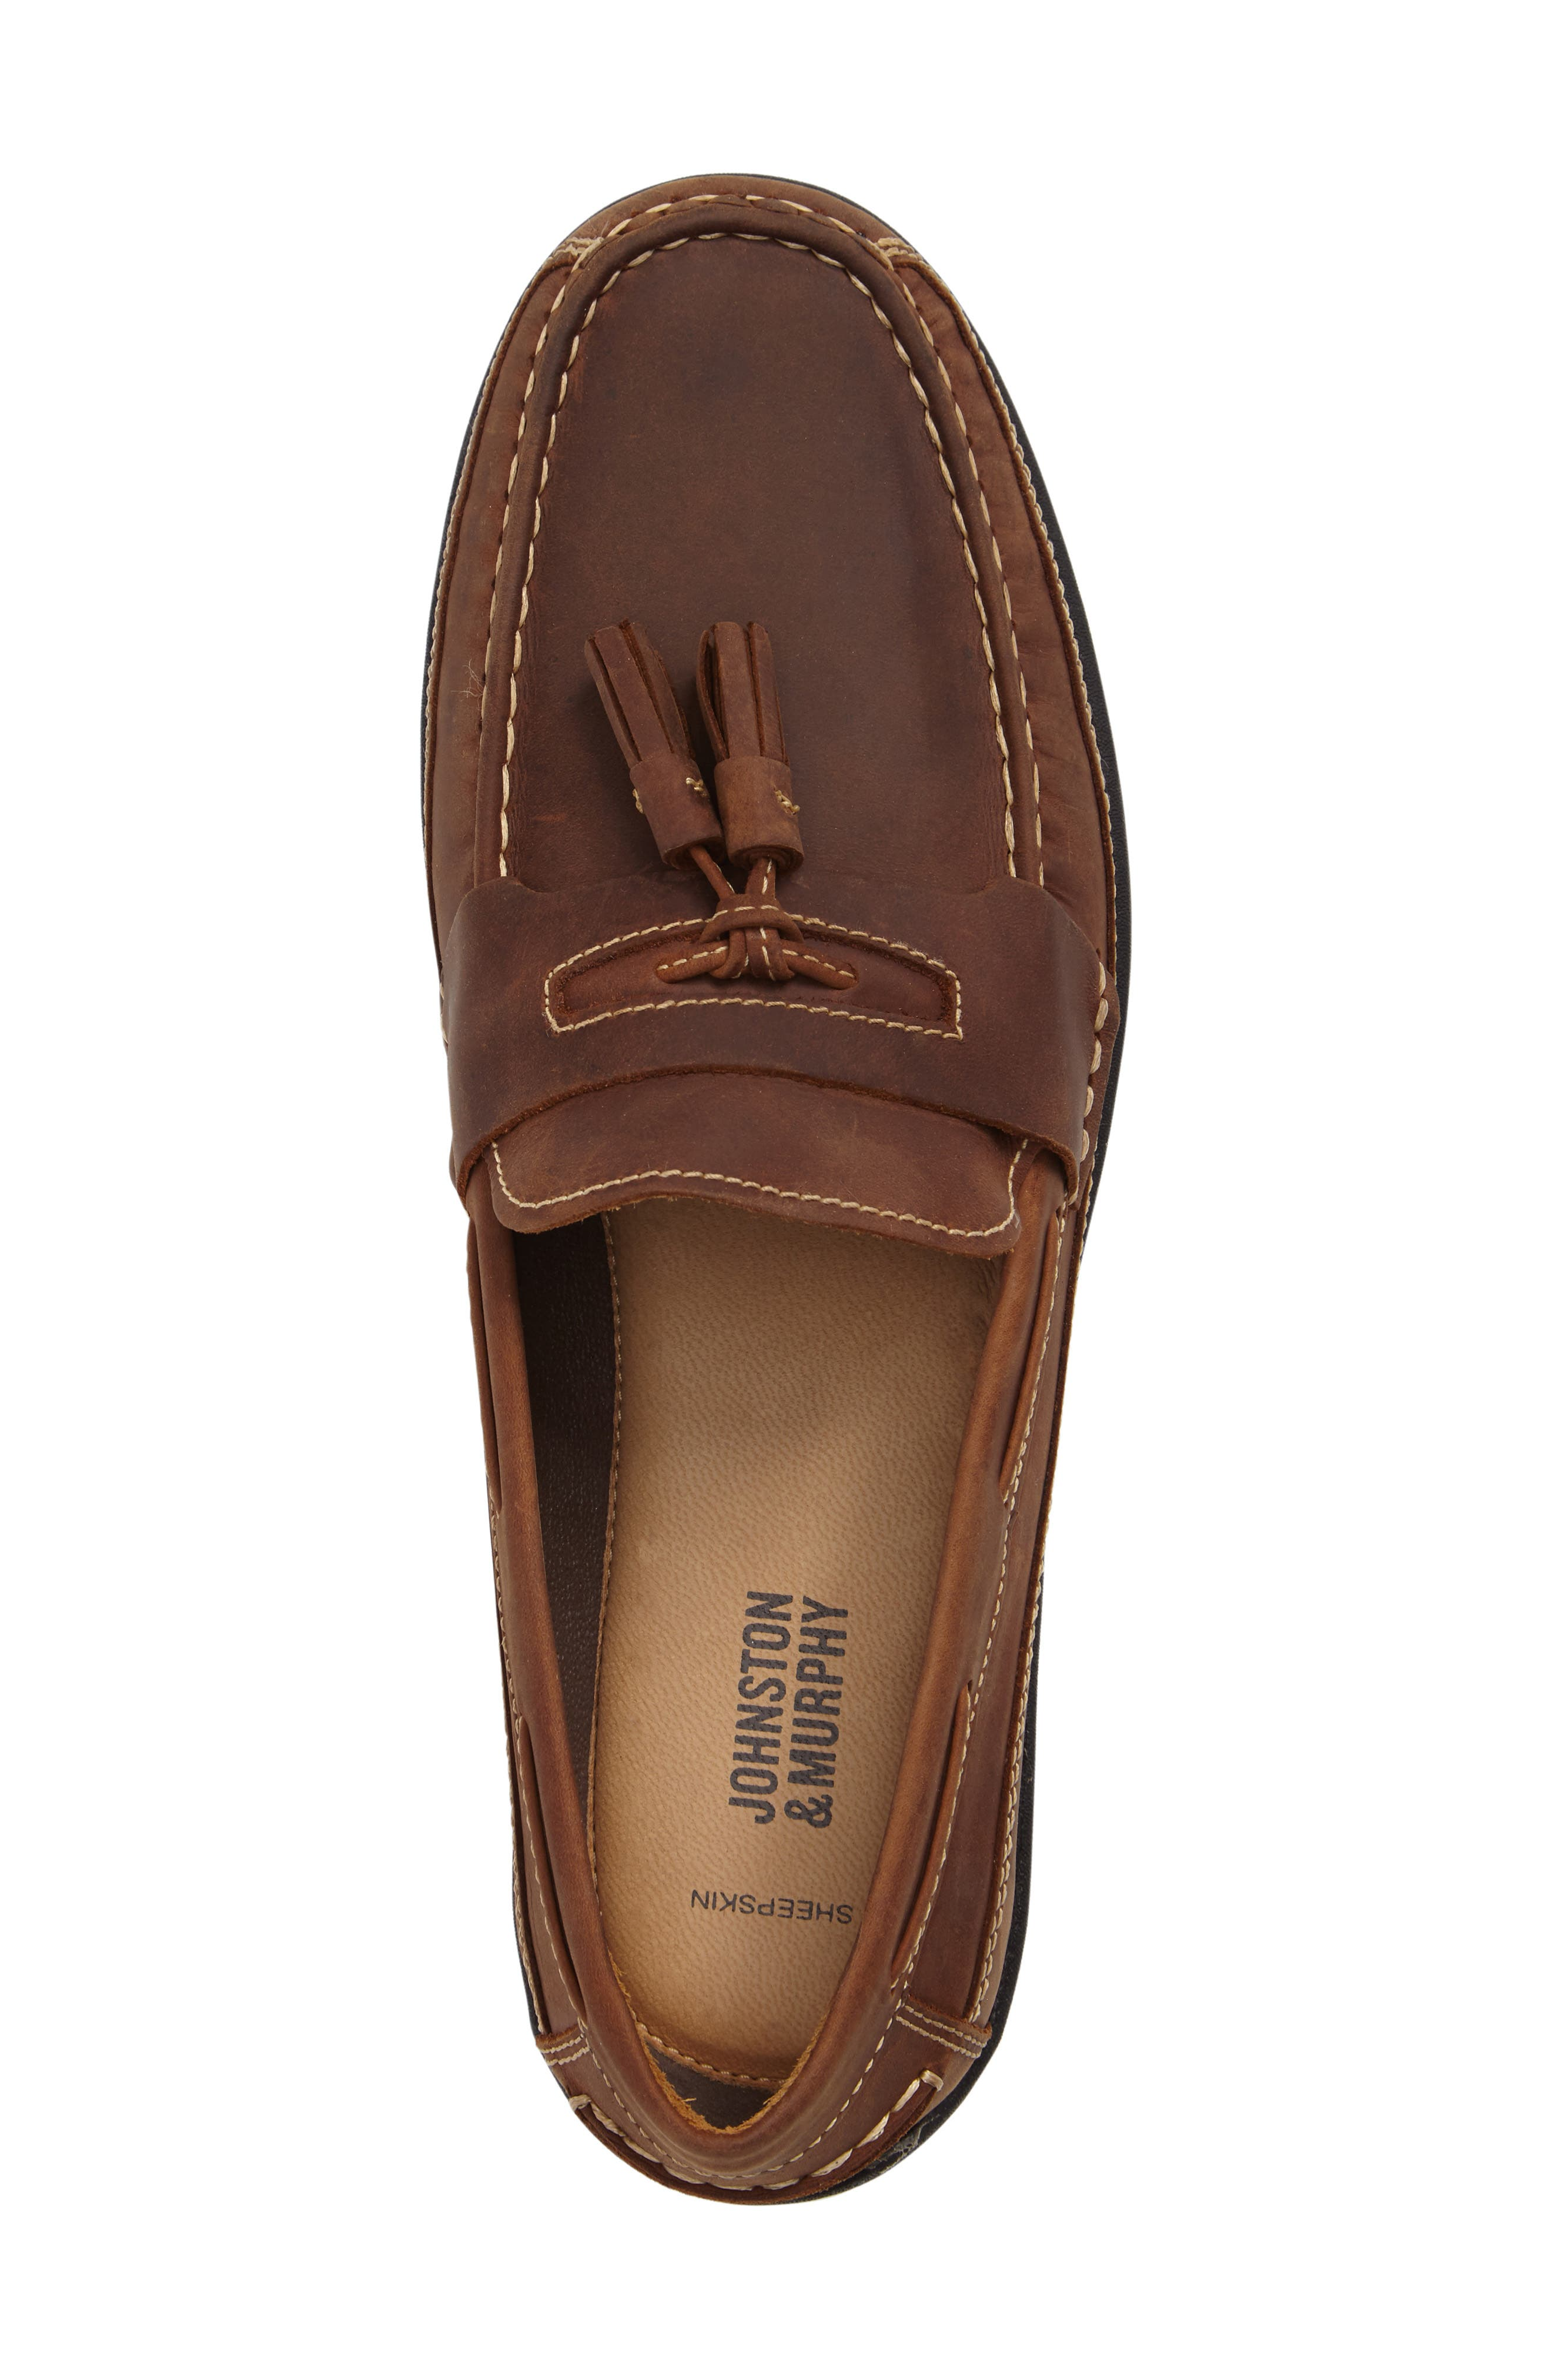 Fowler Tasseled Loafer,                             Alternate thumbnail 5, color,                             TAN LEATHER